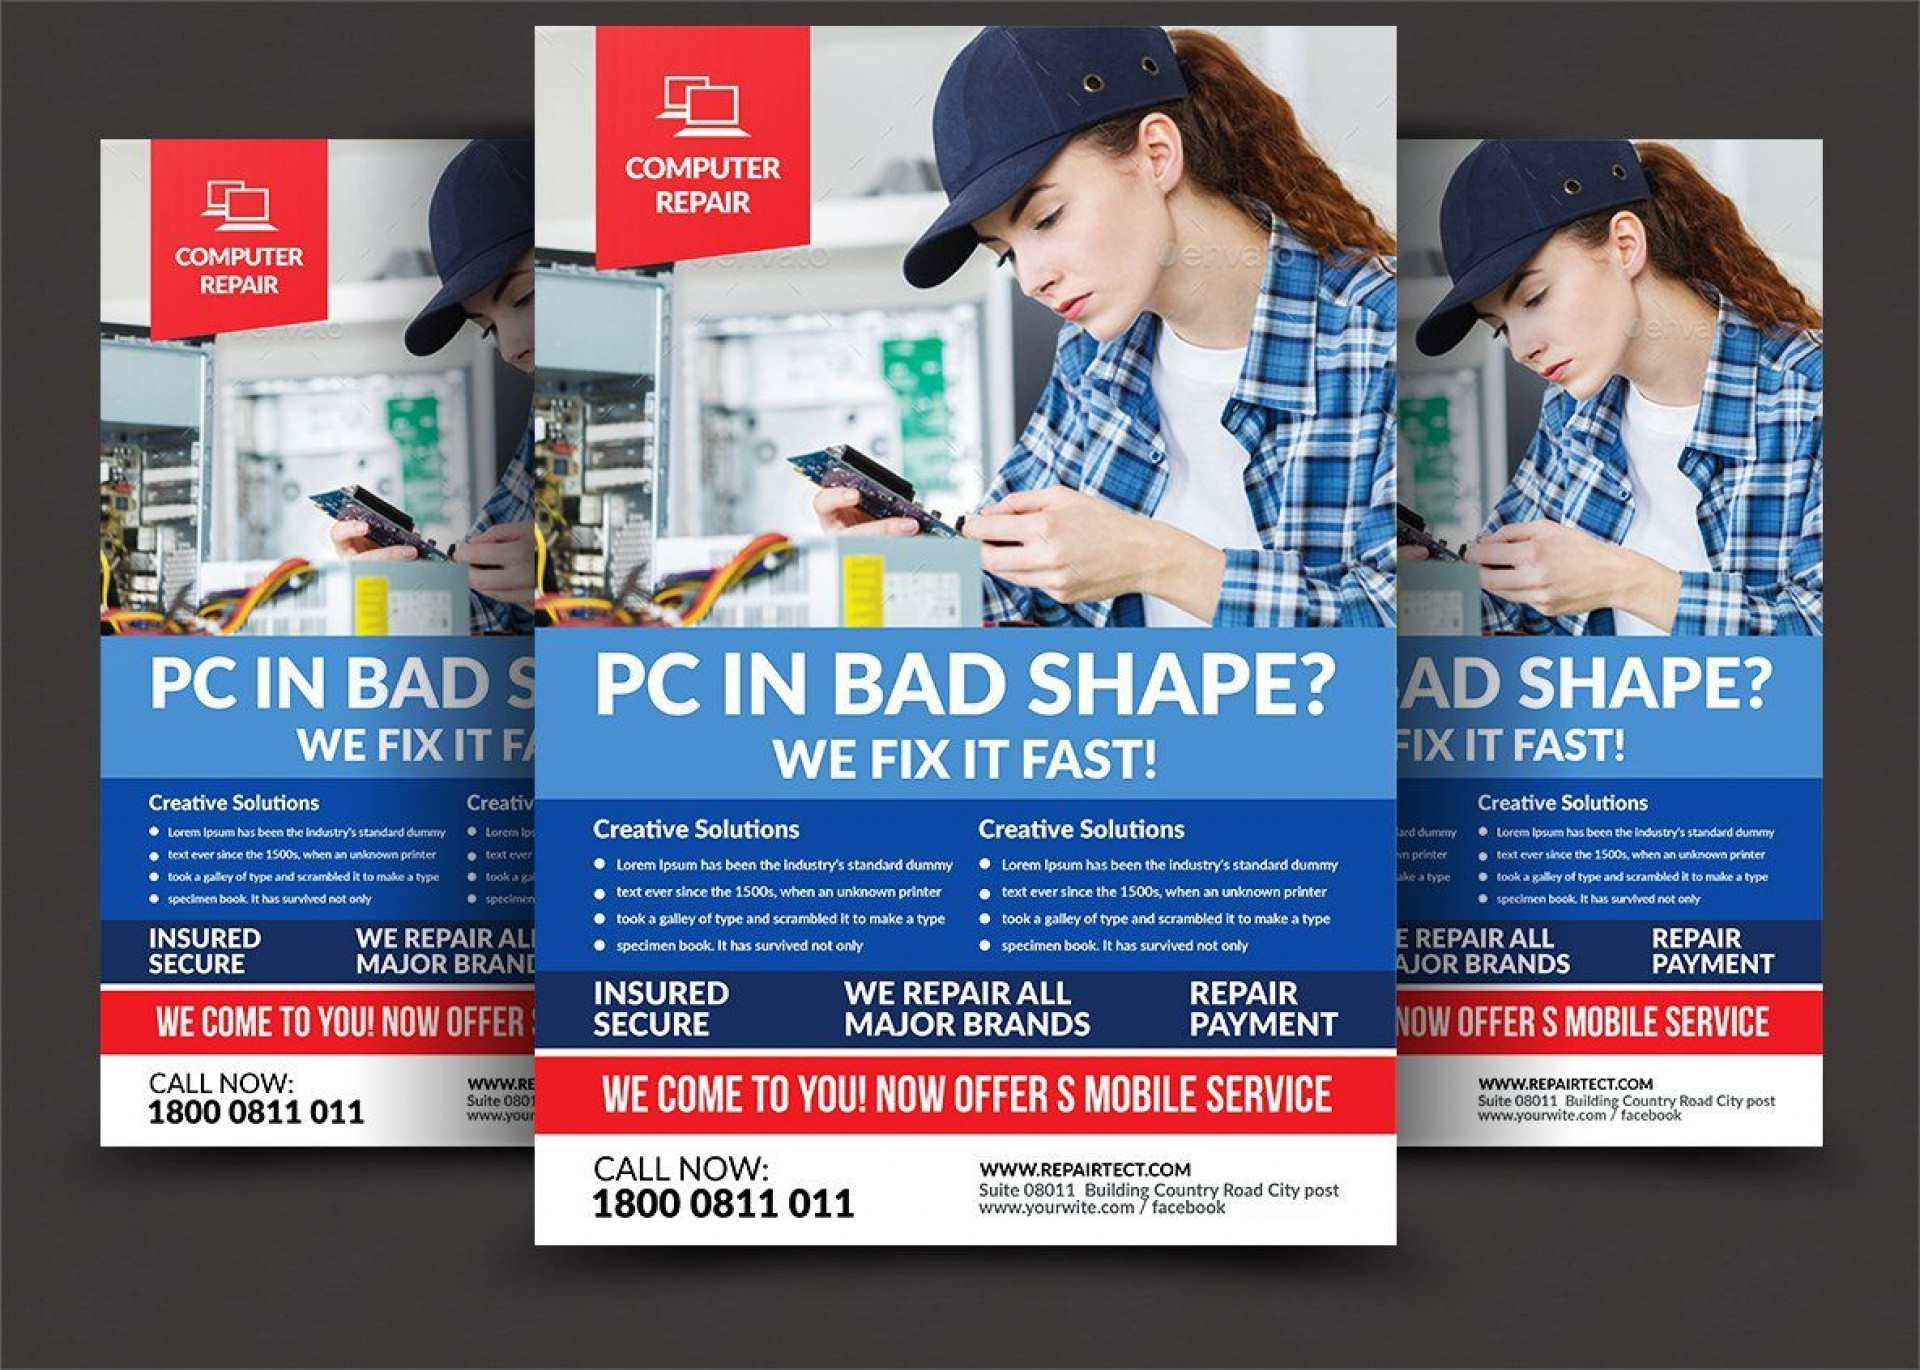 008 Awesome Computer Repair Flyer Template Picture  Word Busines Free1920